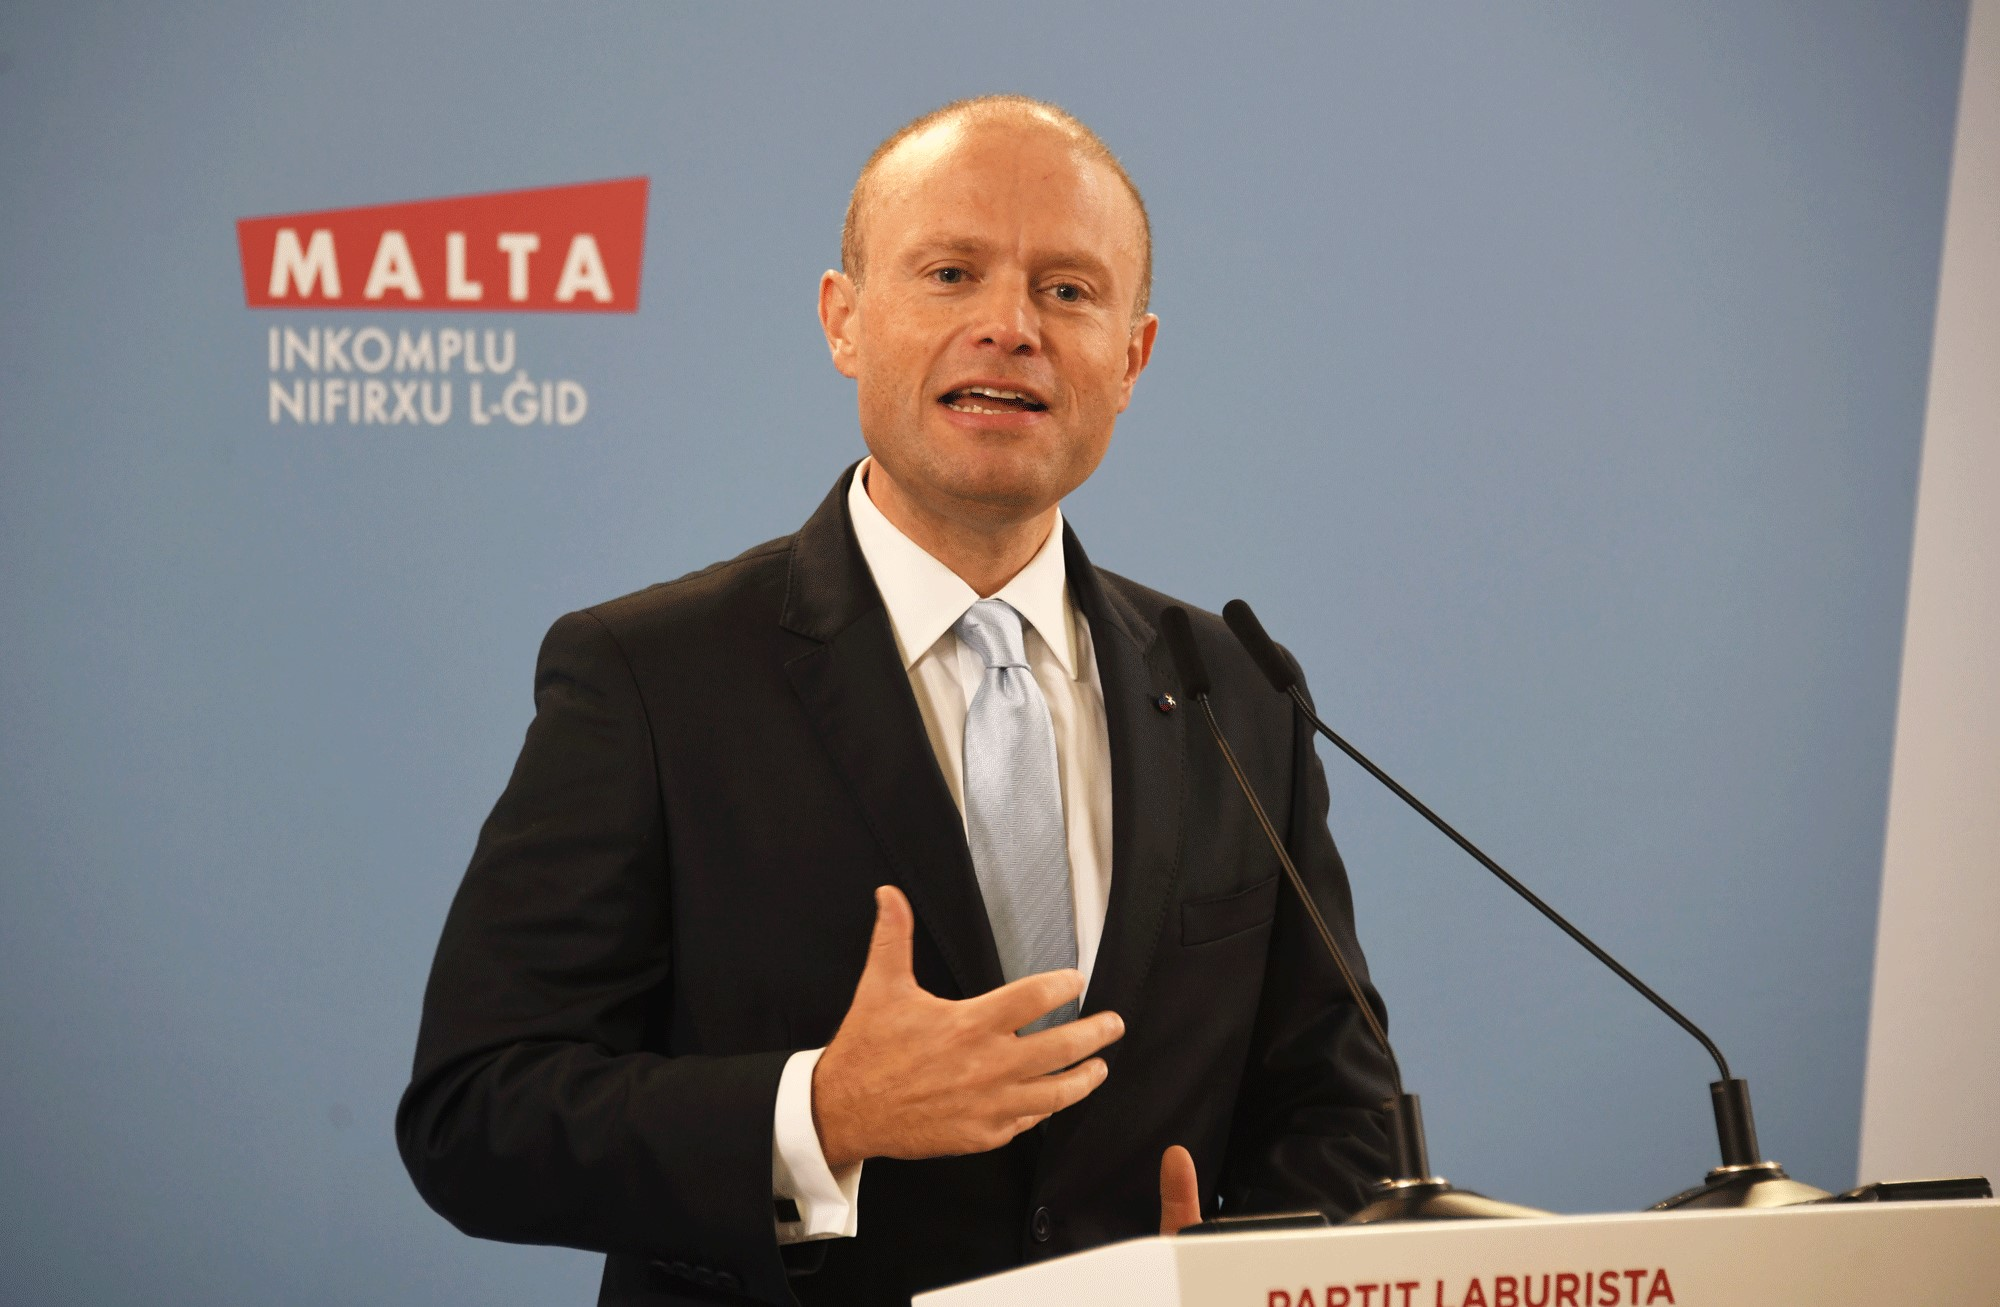 'What has been given today can be given in coming years' - Muscat - Newsbook